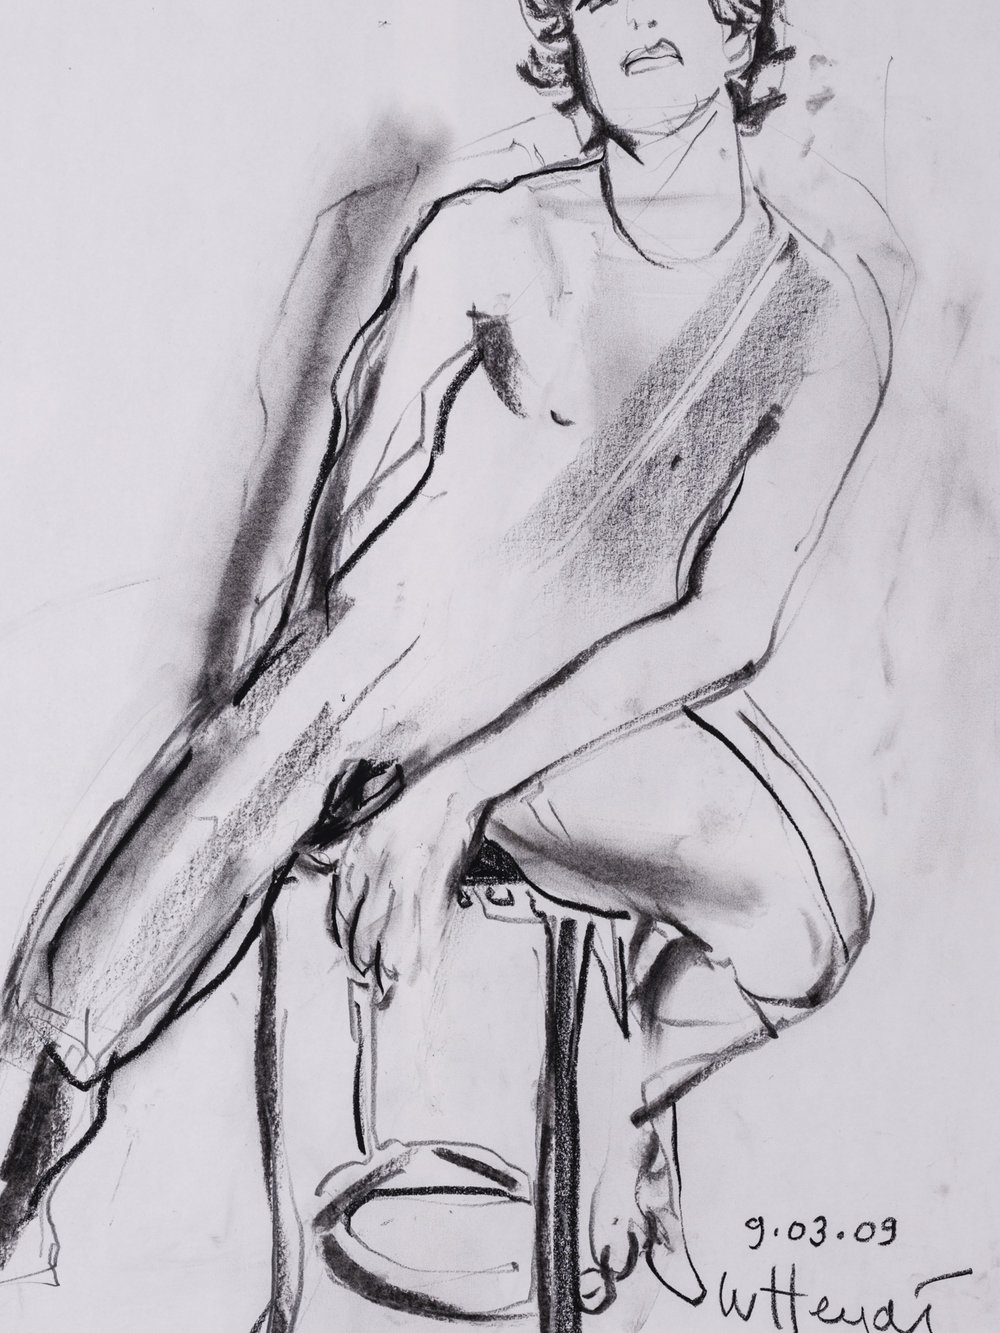 FigureDrawing-wHEYDT-28.jpg